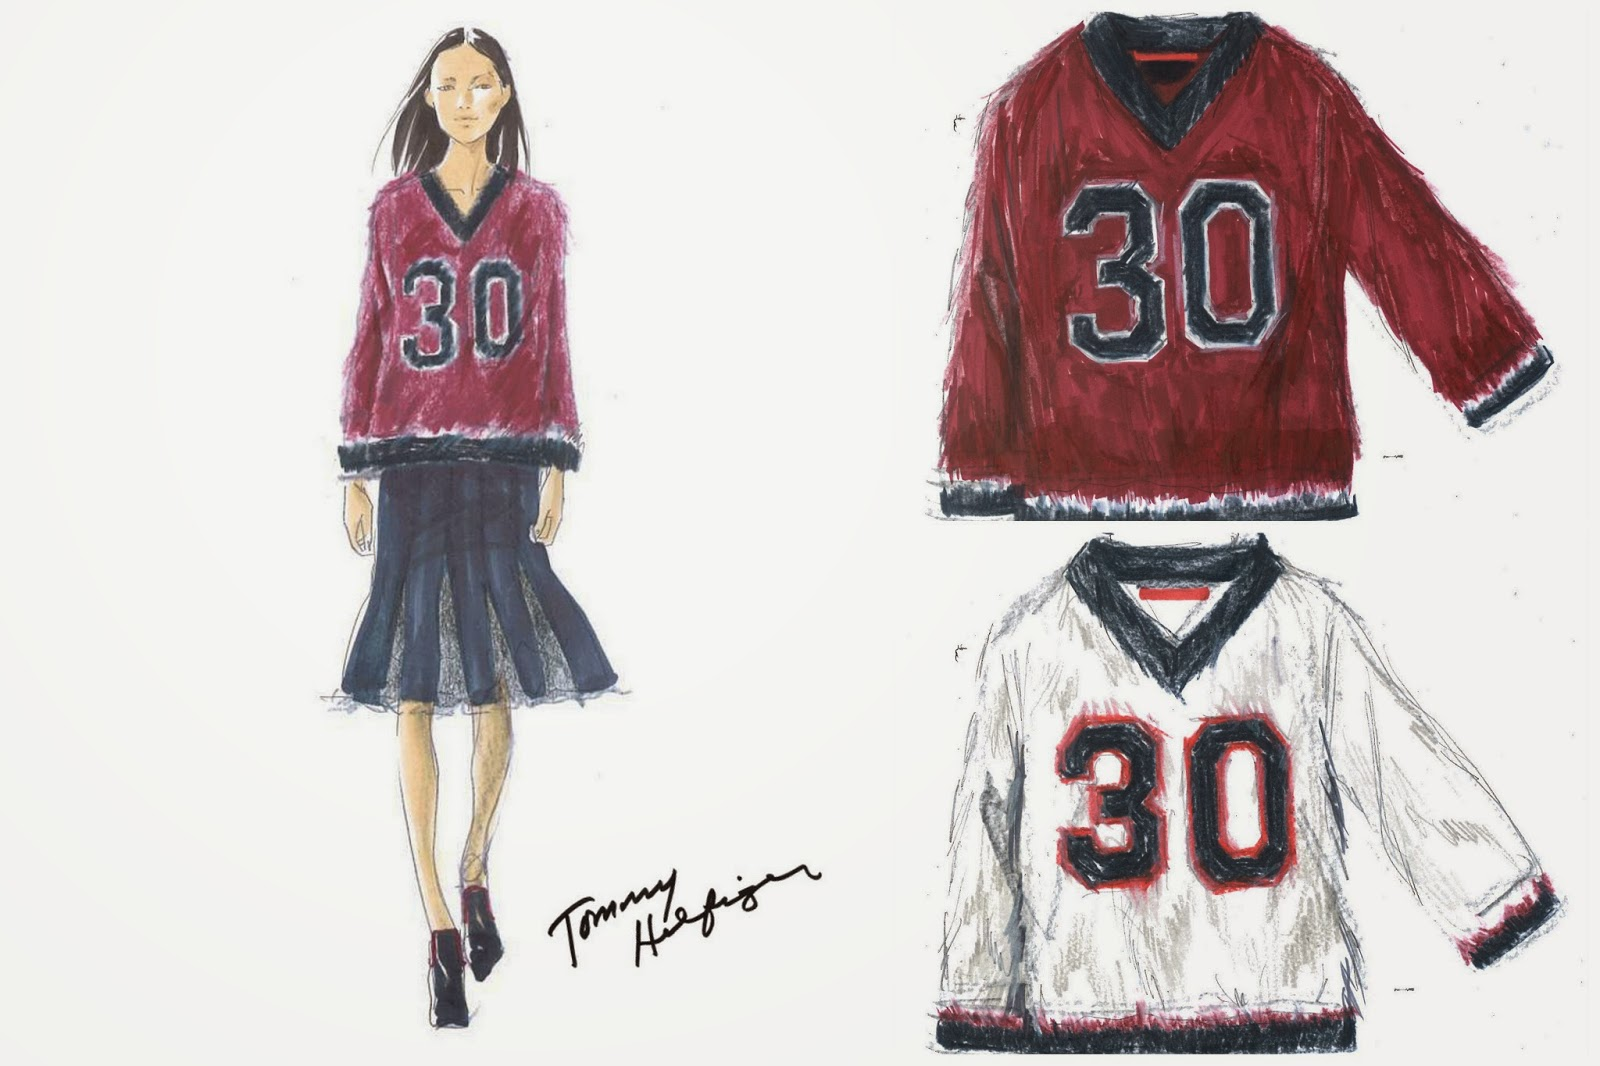 Tommy Hilfiger Limited-Edition Fall 2015 Designs Available Straight From the Runway to Celebrate 30th Anniversary